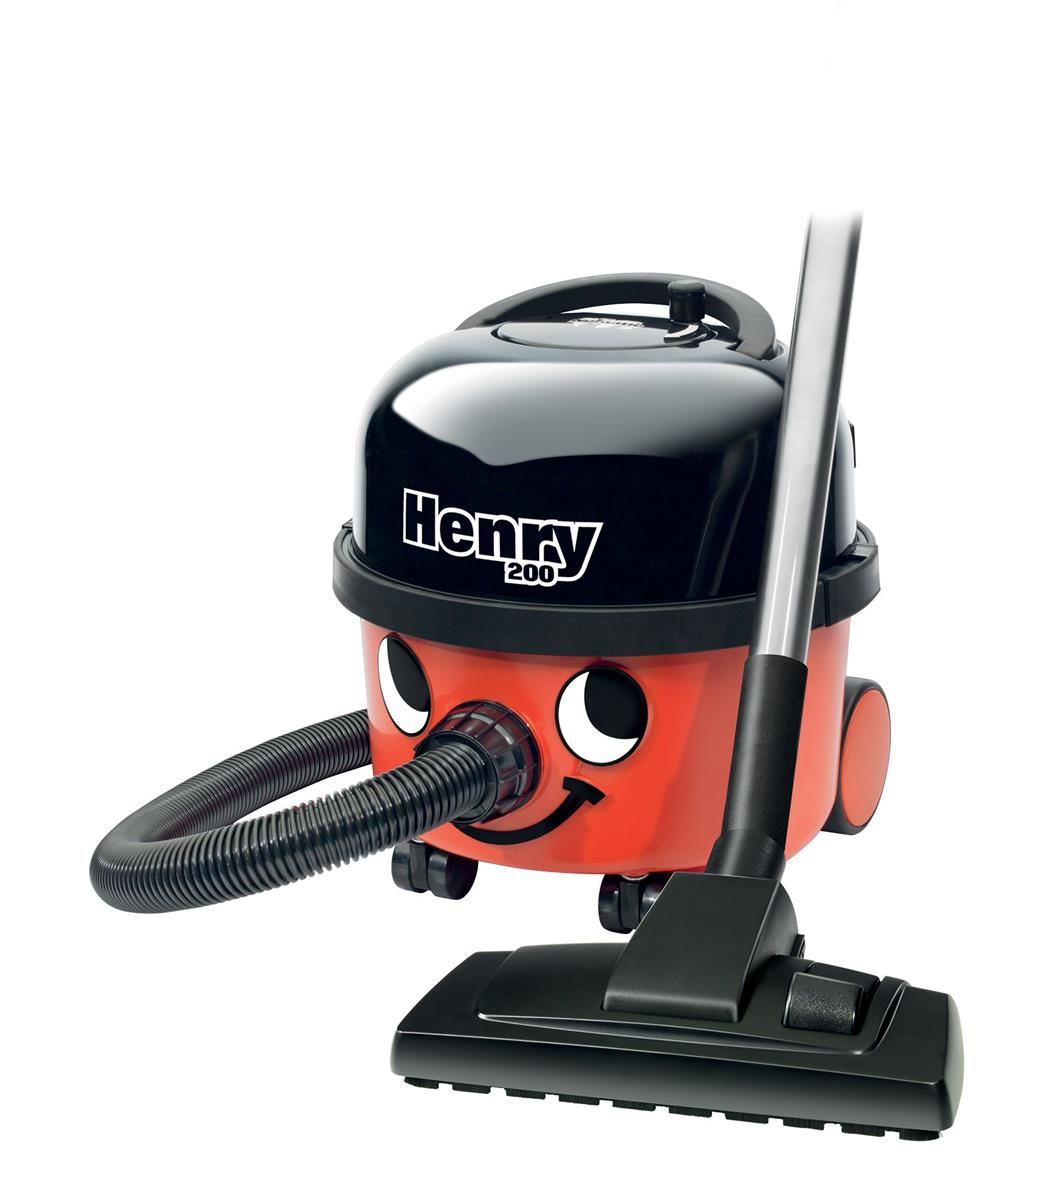 Numatic Henry Vacuum Cleaner 580W 6 Litre 6.6kg W340xD340xH370mm Red Ref HVR160